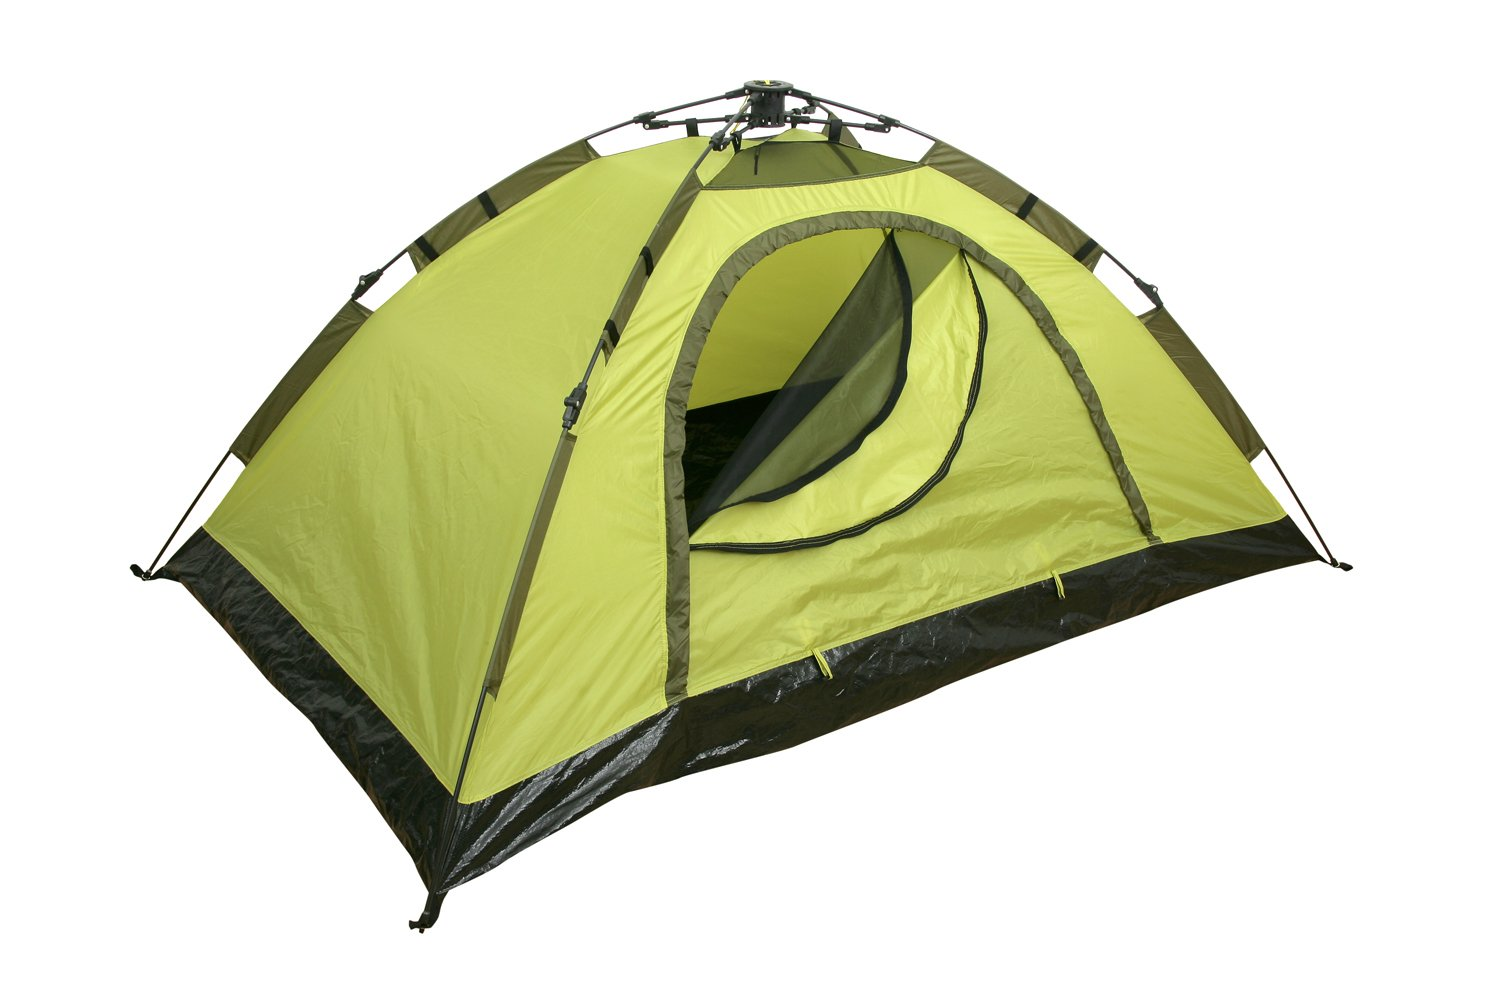 Yellowstone Lightweight Rapid Unisex Outdoor Dome Tent available in Multi - Colour (Gold/TNF Black) - 2 Persons Amazon.co.uk Sports u0026 Outdoors  sc 1 st  Amazon UK & Yellowstone Lightweight Rapid Unisex Outdoor Dome Tent available ...